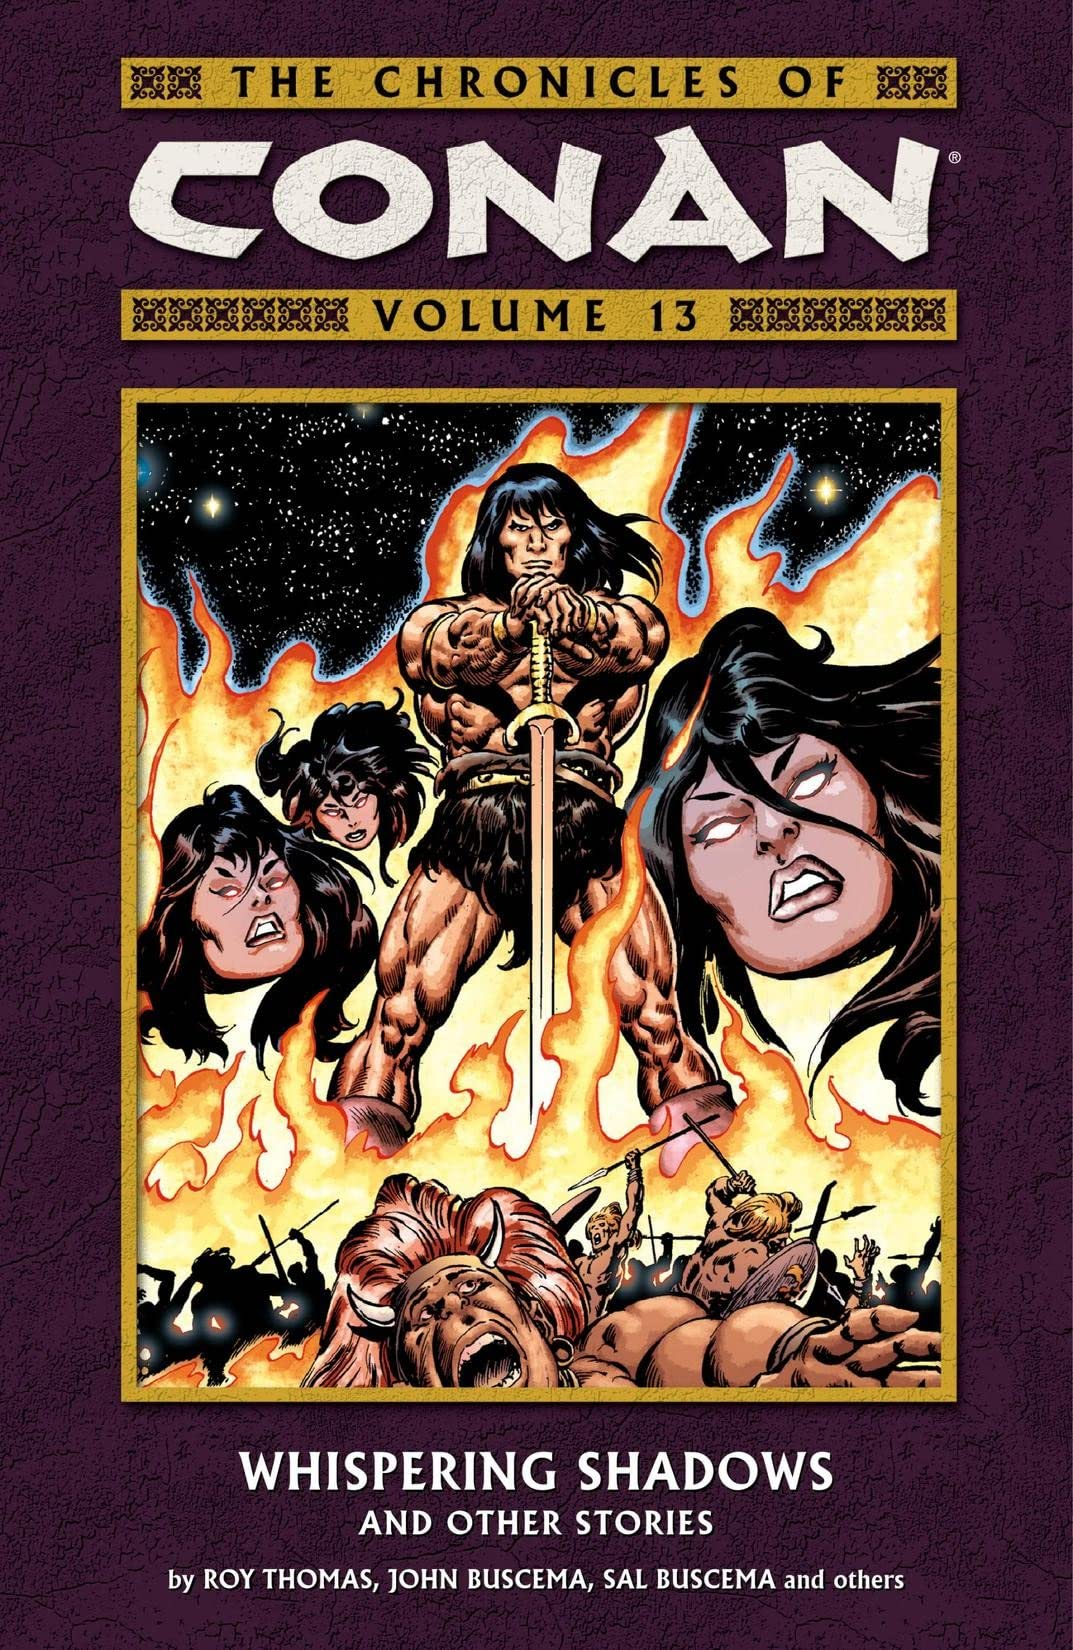 Chronicles of Conan Vol. 13: Whispering Shadows and Other Stories